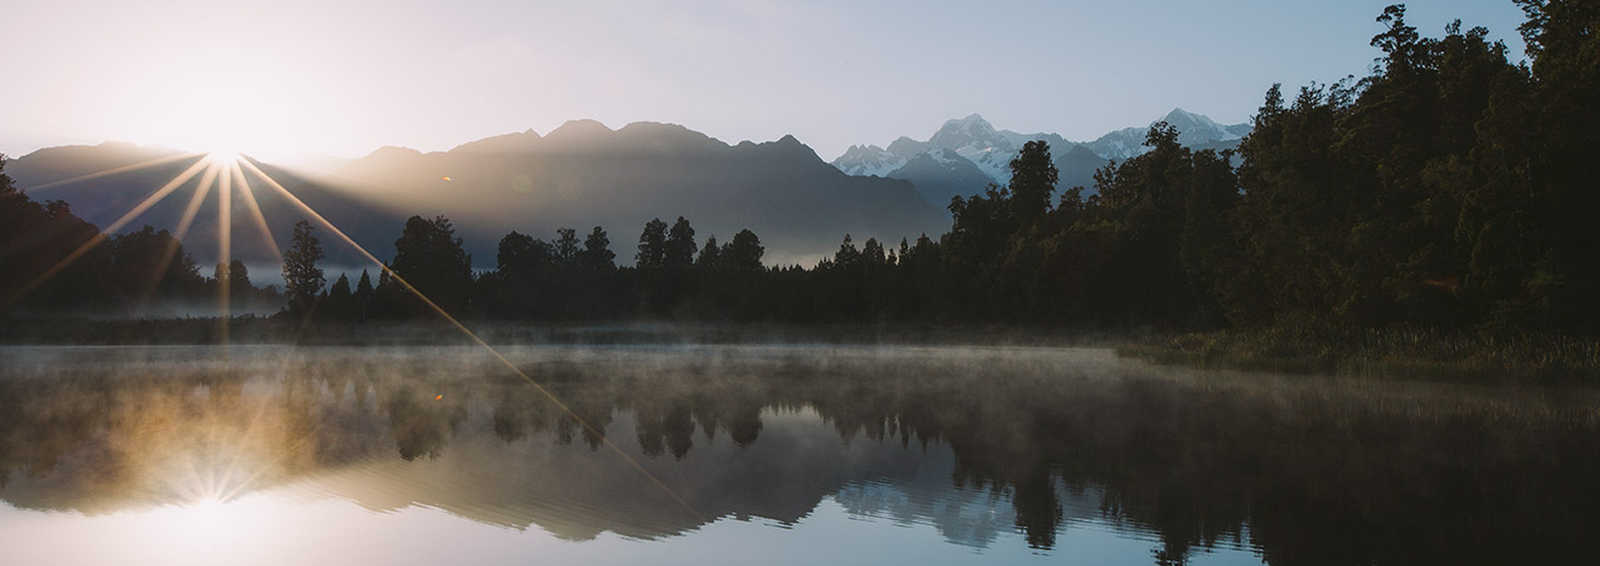 West Coast - sunrise over the Southern Alps from Lake Matheson, New Zealand